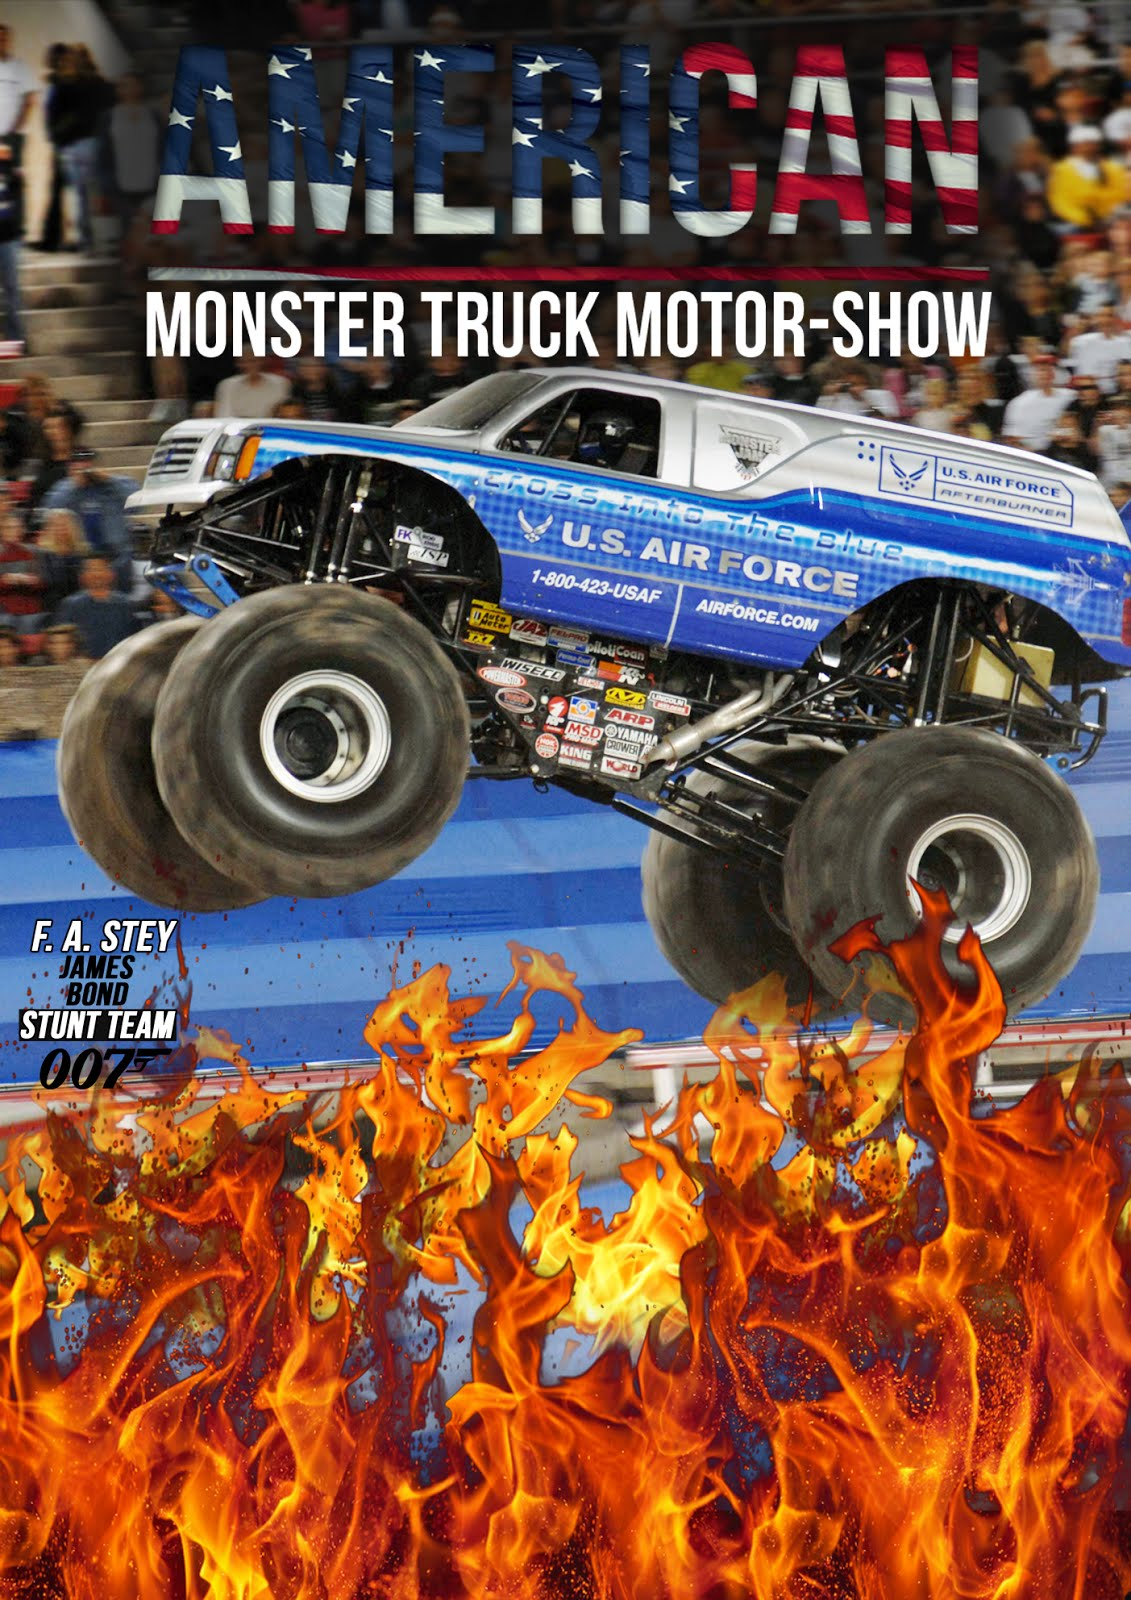 American Monster Truck Motor Show w Piasecznie